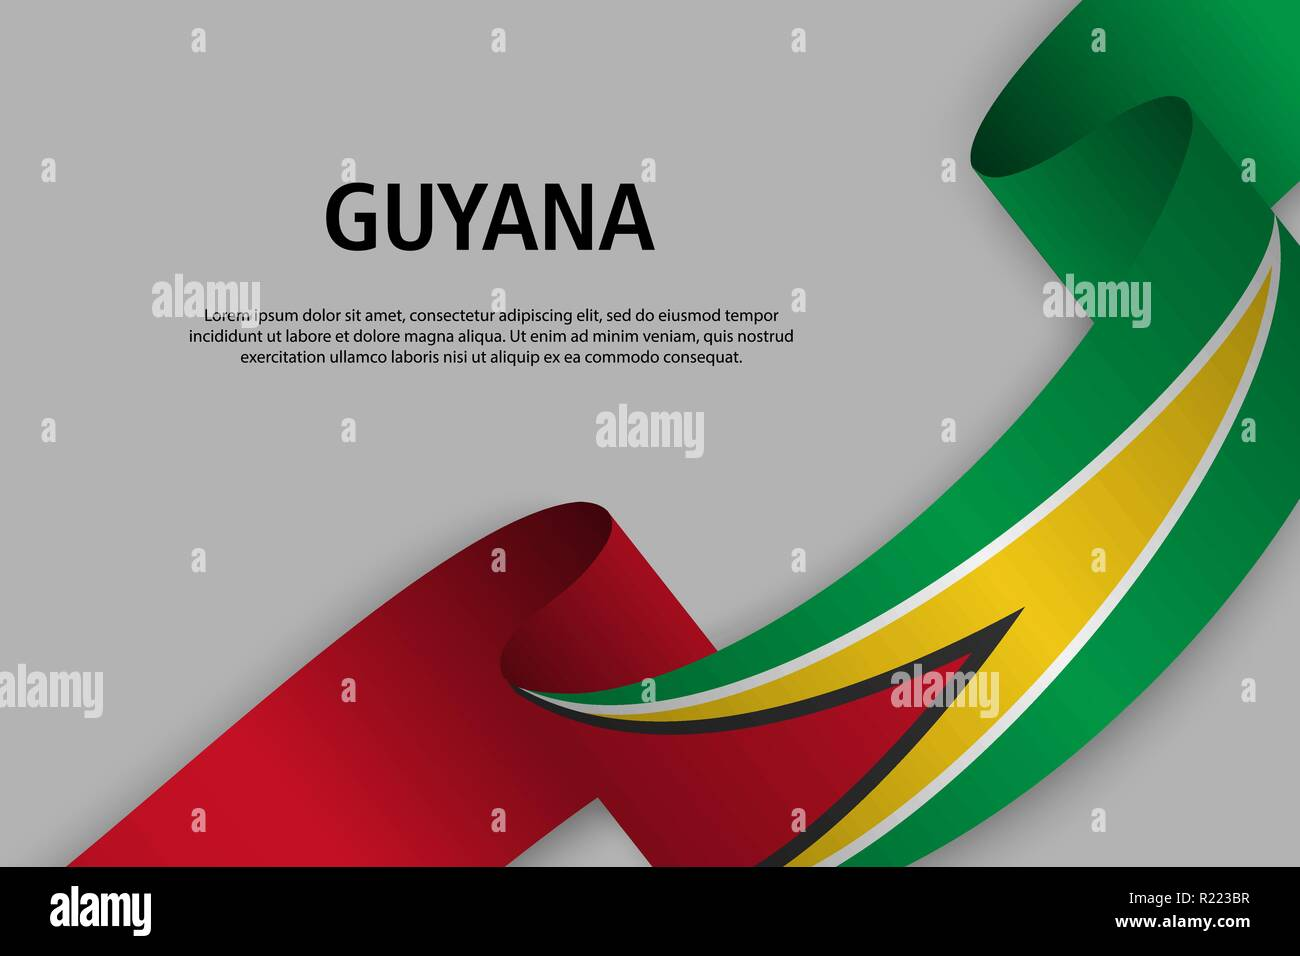 Waving ribbon with Flag of Guyana, Template for Independence